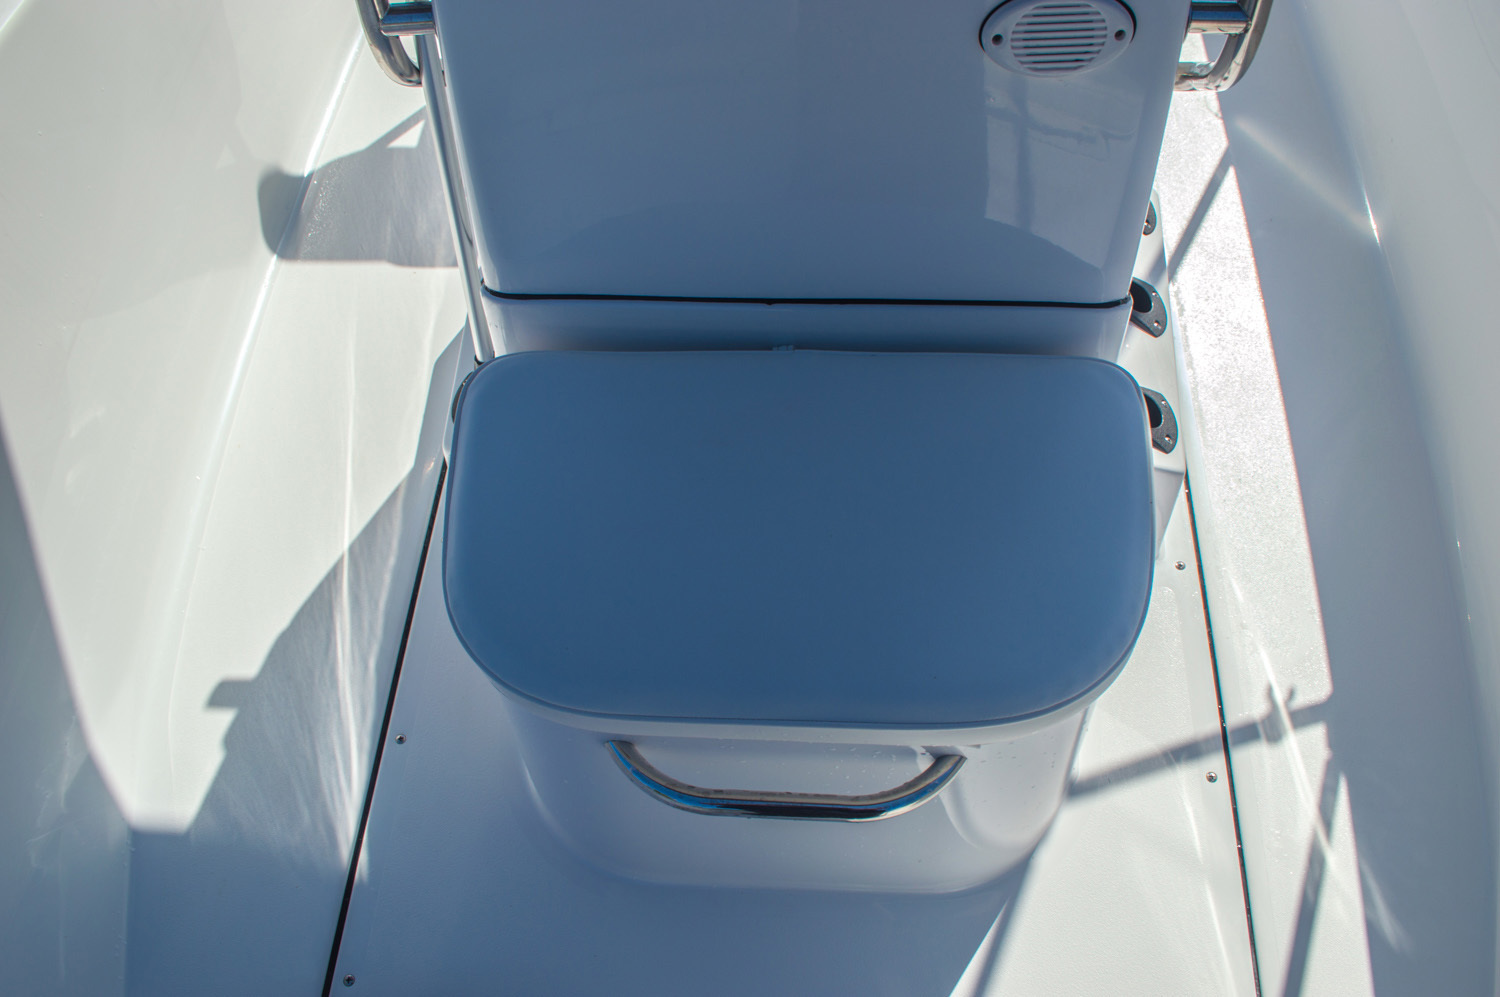 Thumbnail 29 for New 2016 Sportsman 17 Island Reef boat for sale in West Palm Beach, FL